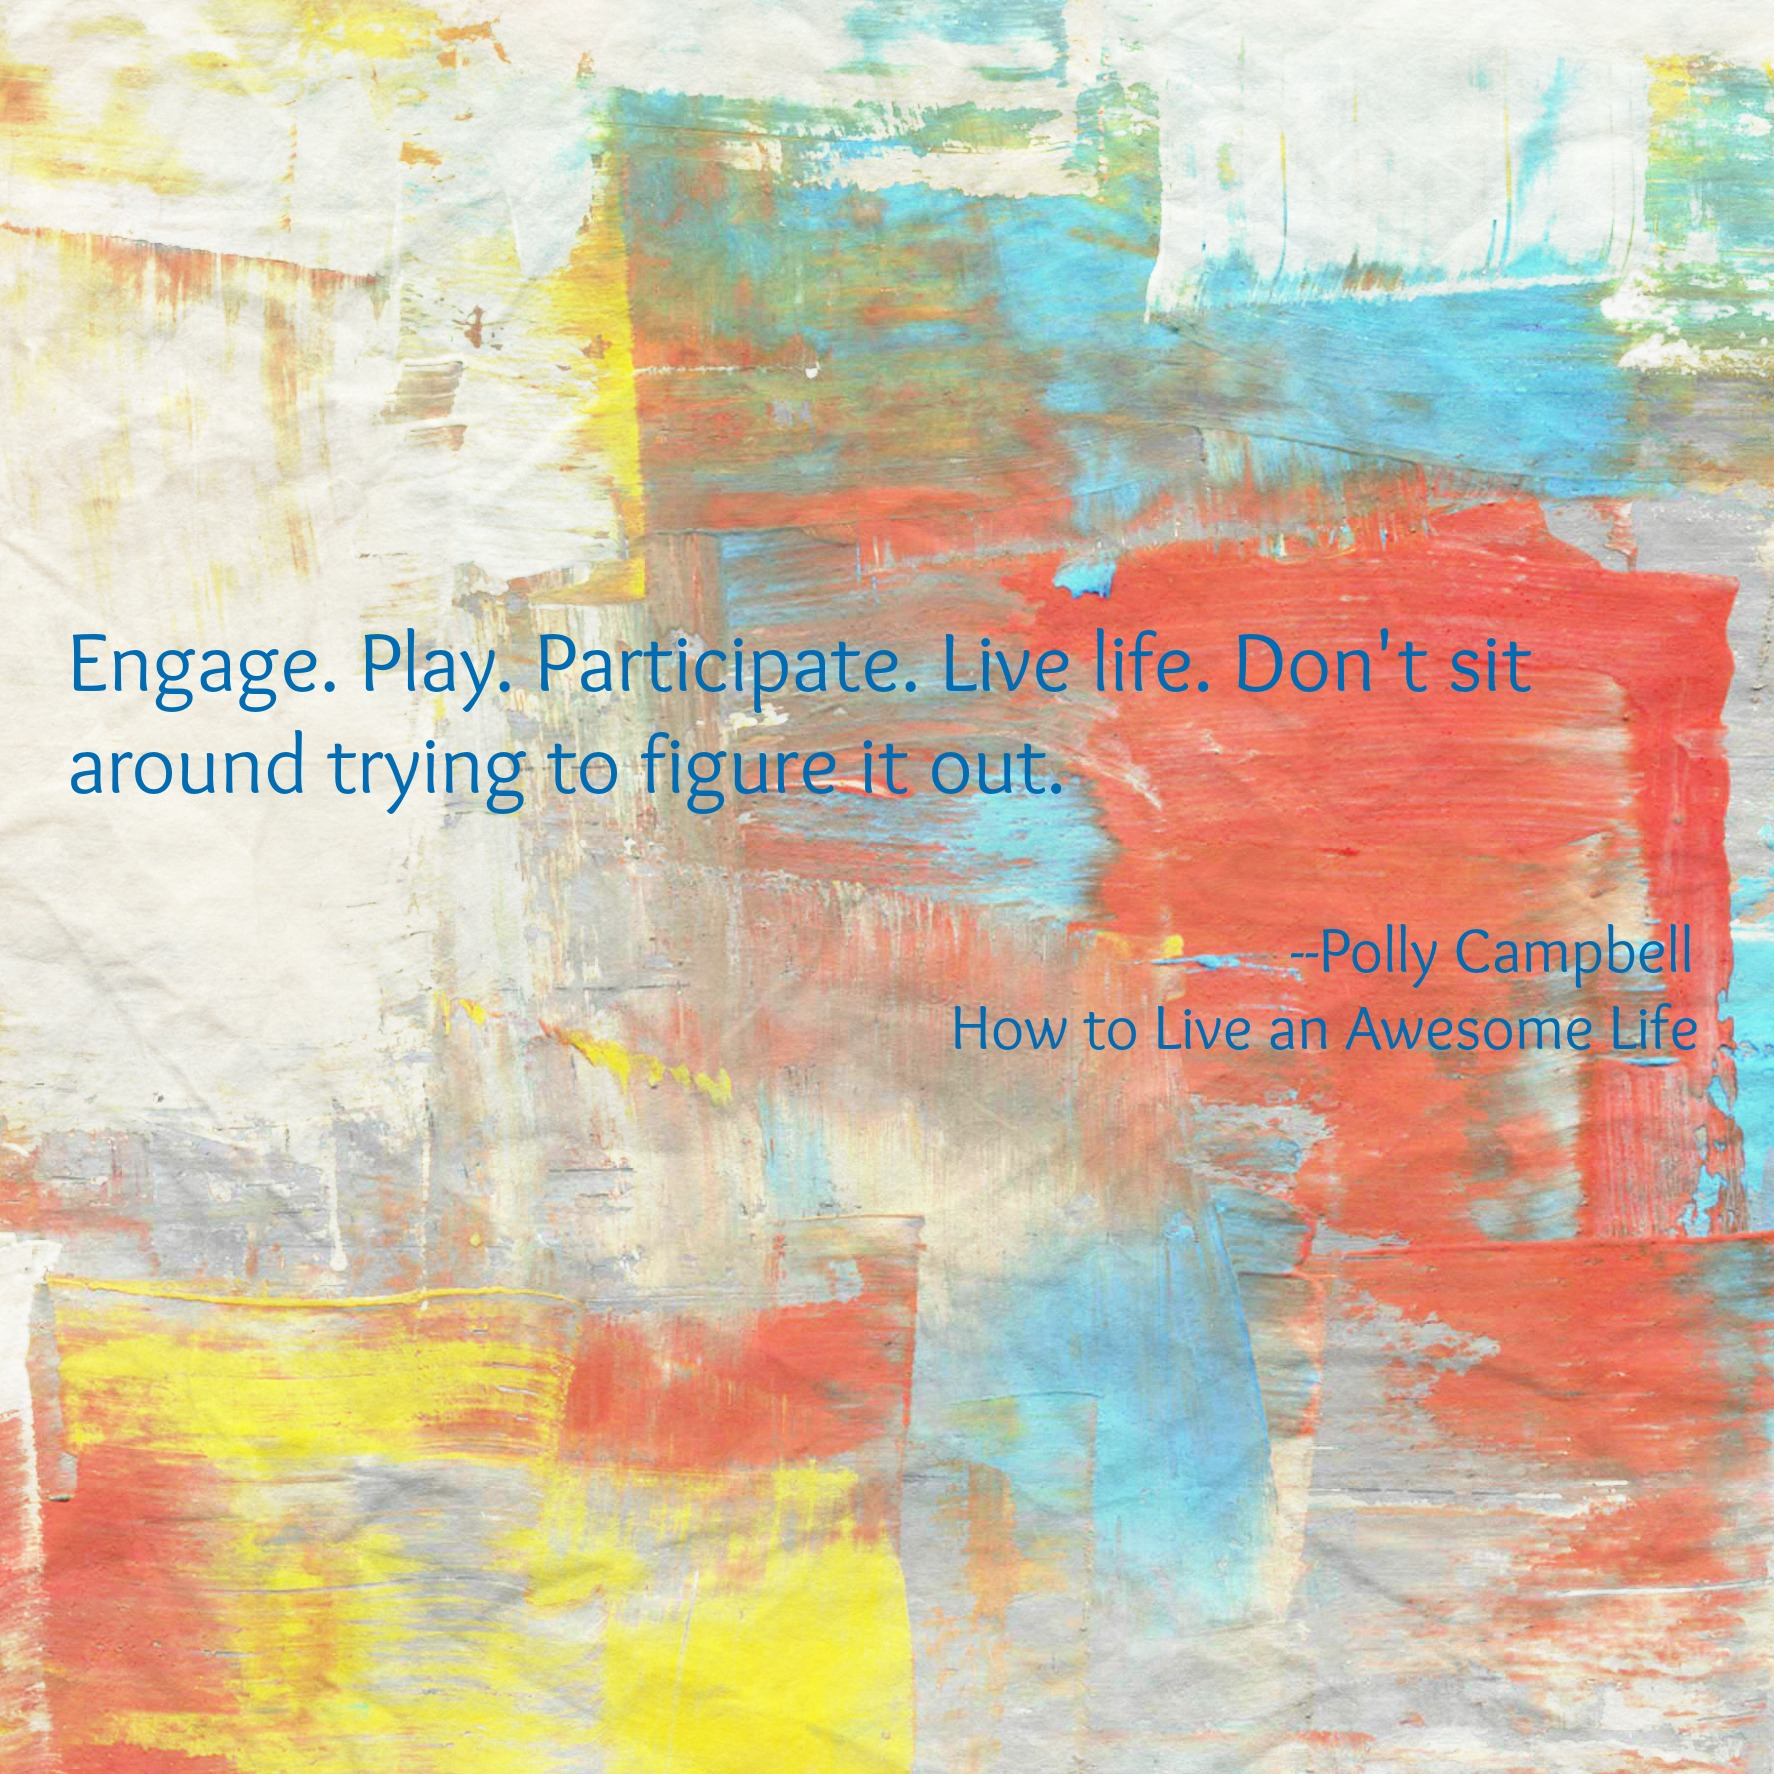 Engage, Play, Live